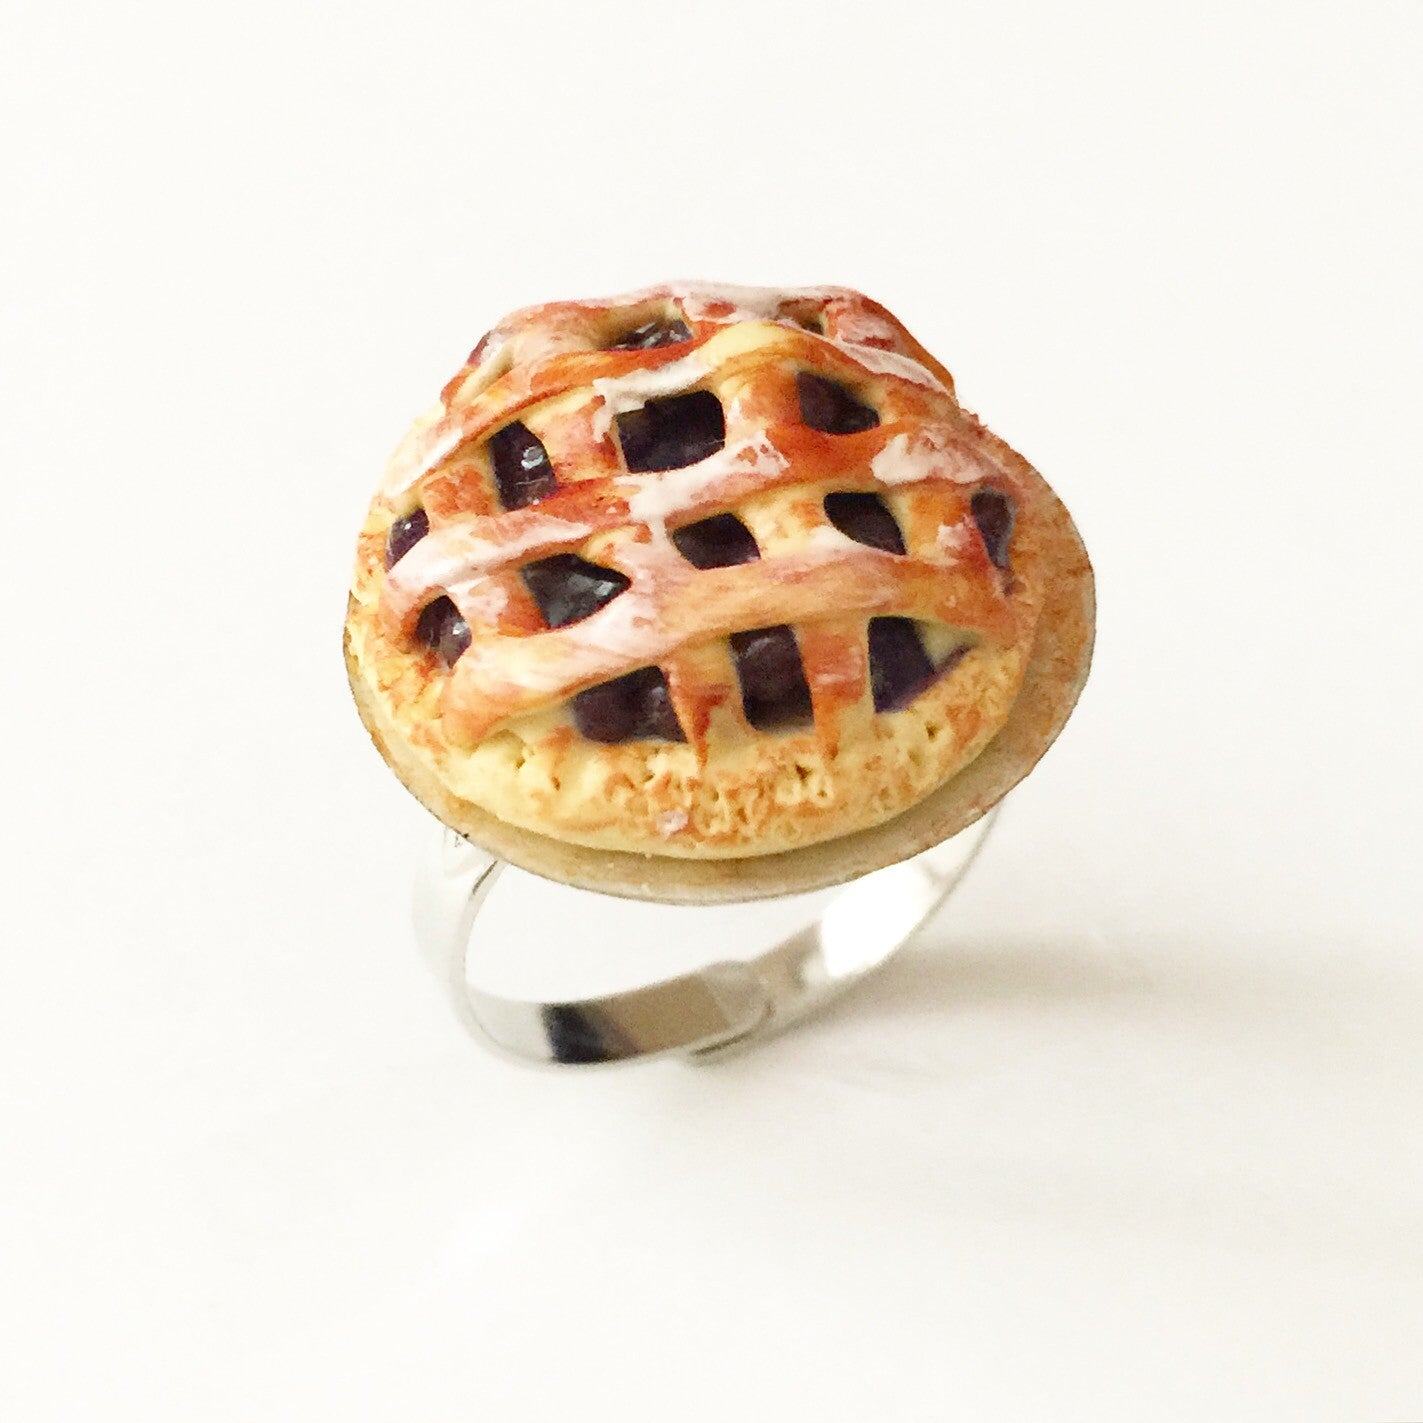 Blueberry Pie Ring - Jillicious charms and accessories - 3